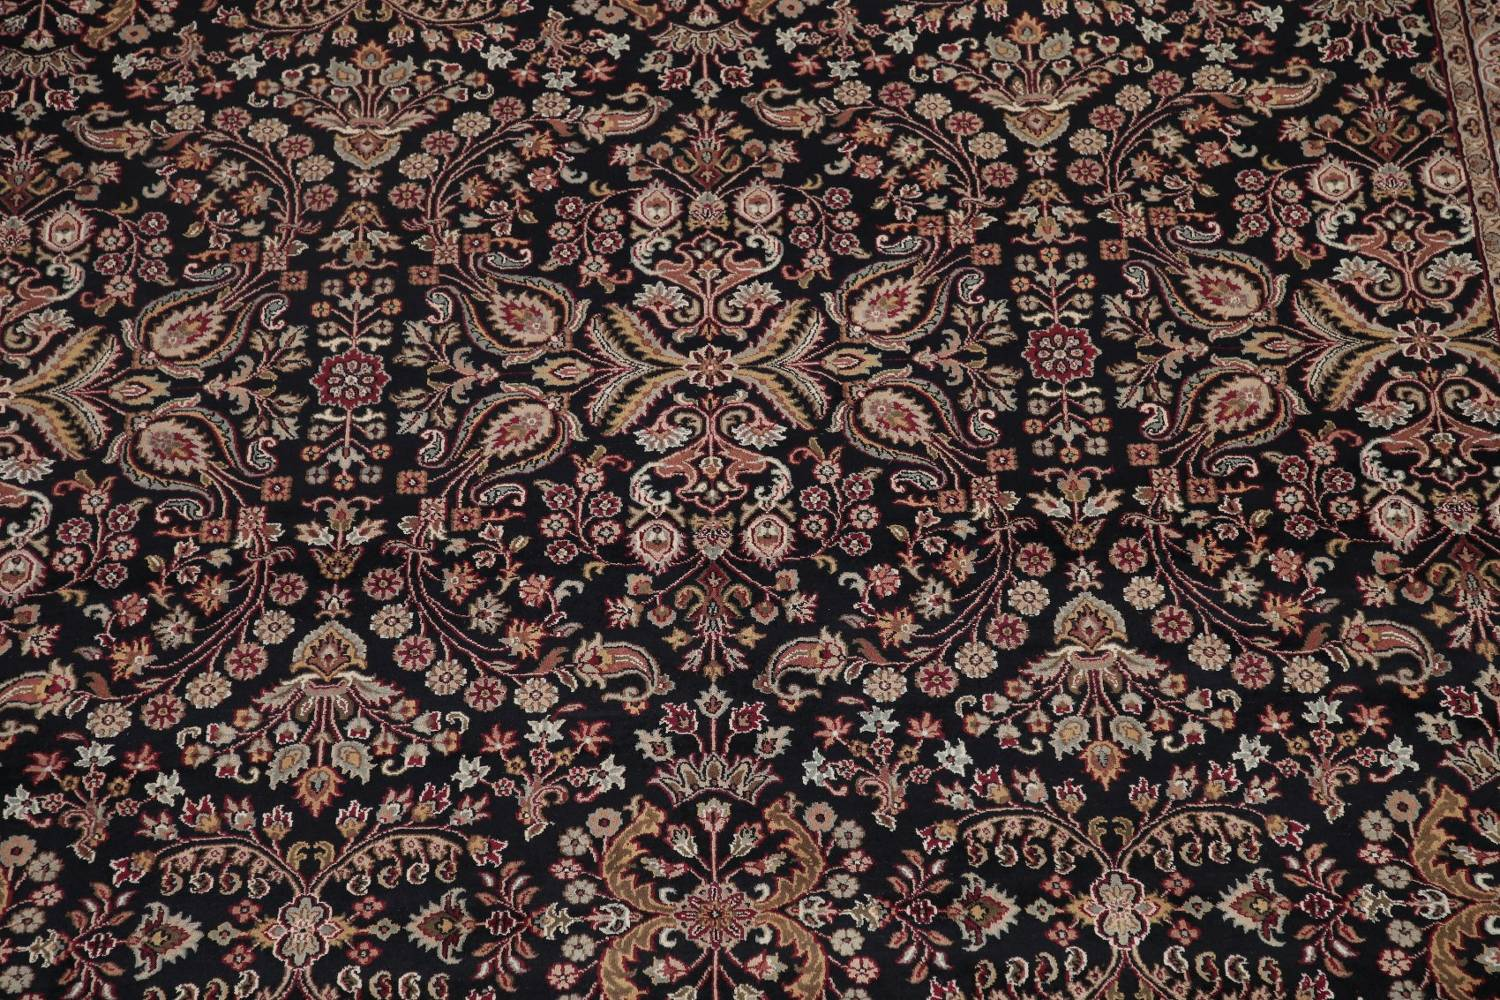 All-Over Black Floral Agra Oriental Wool Rug 9x12 image 4